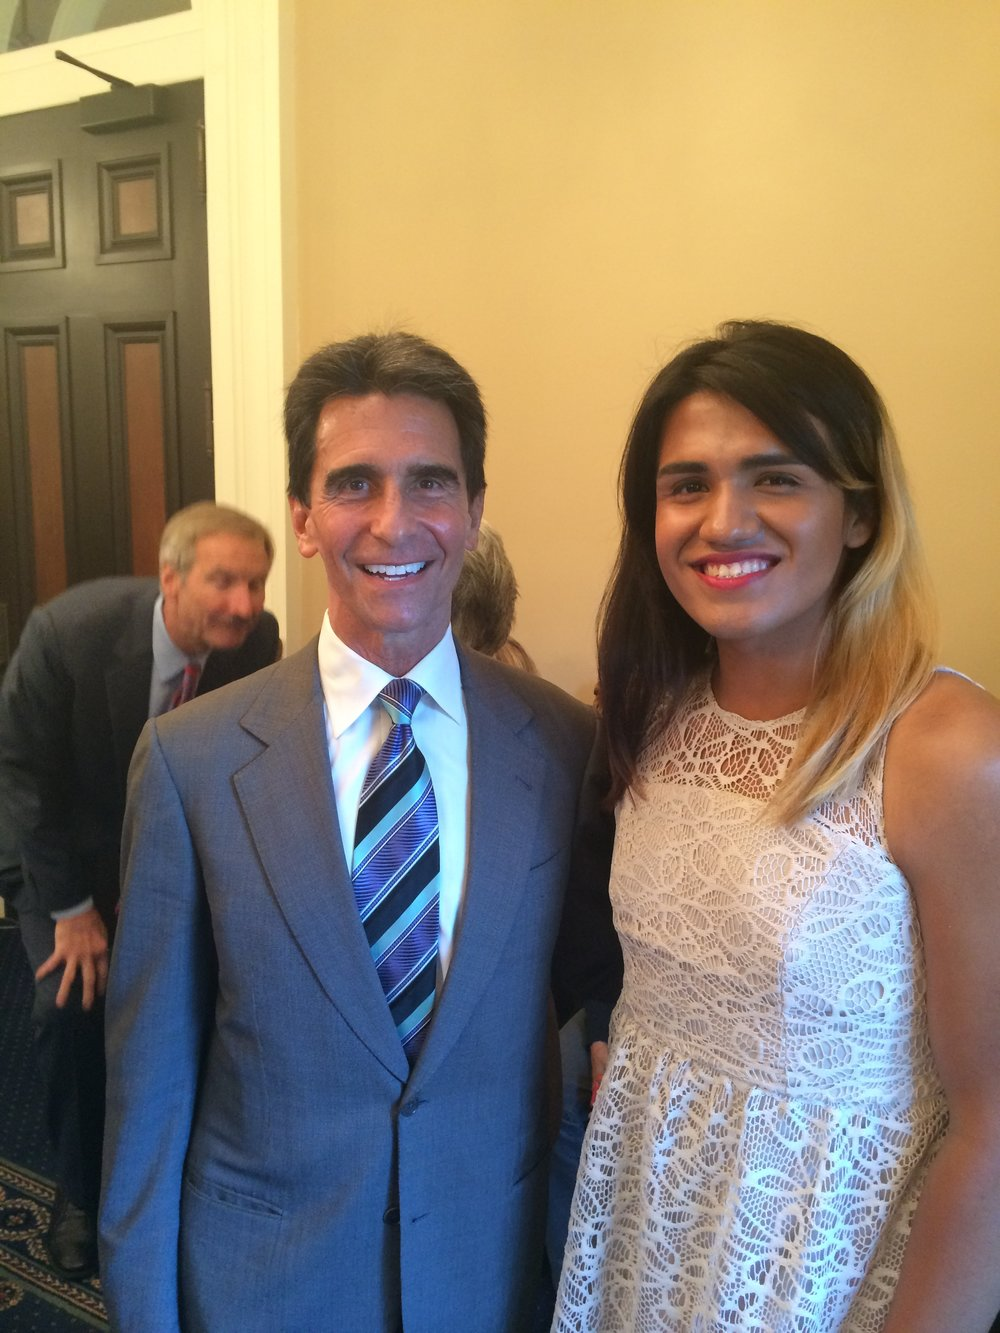 Partnering w/Assemblyman Mark Leno on CA AB1266